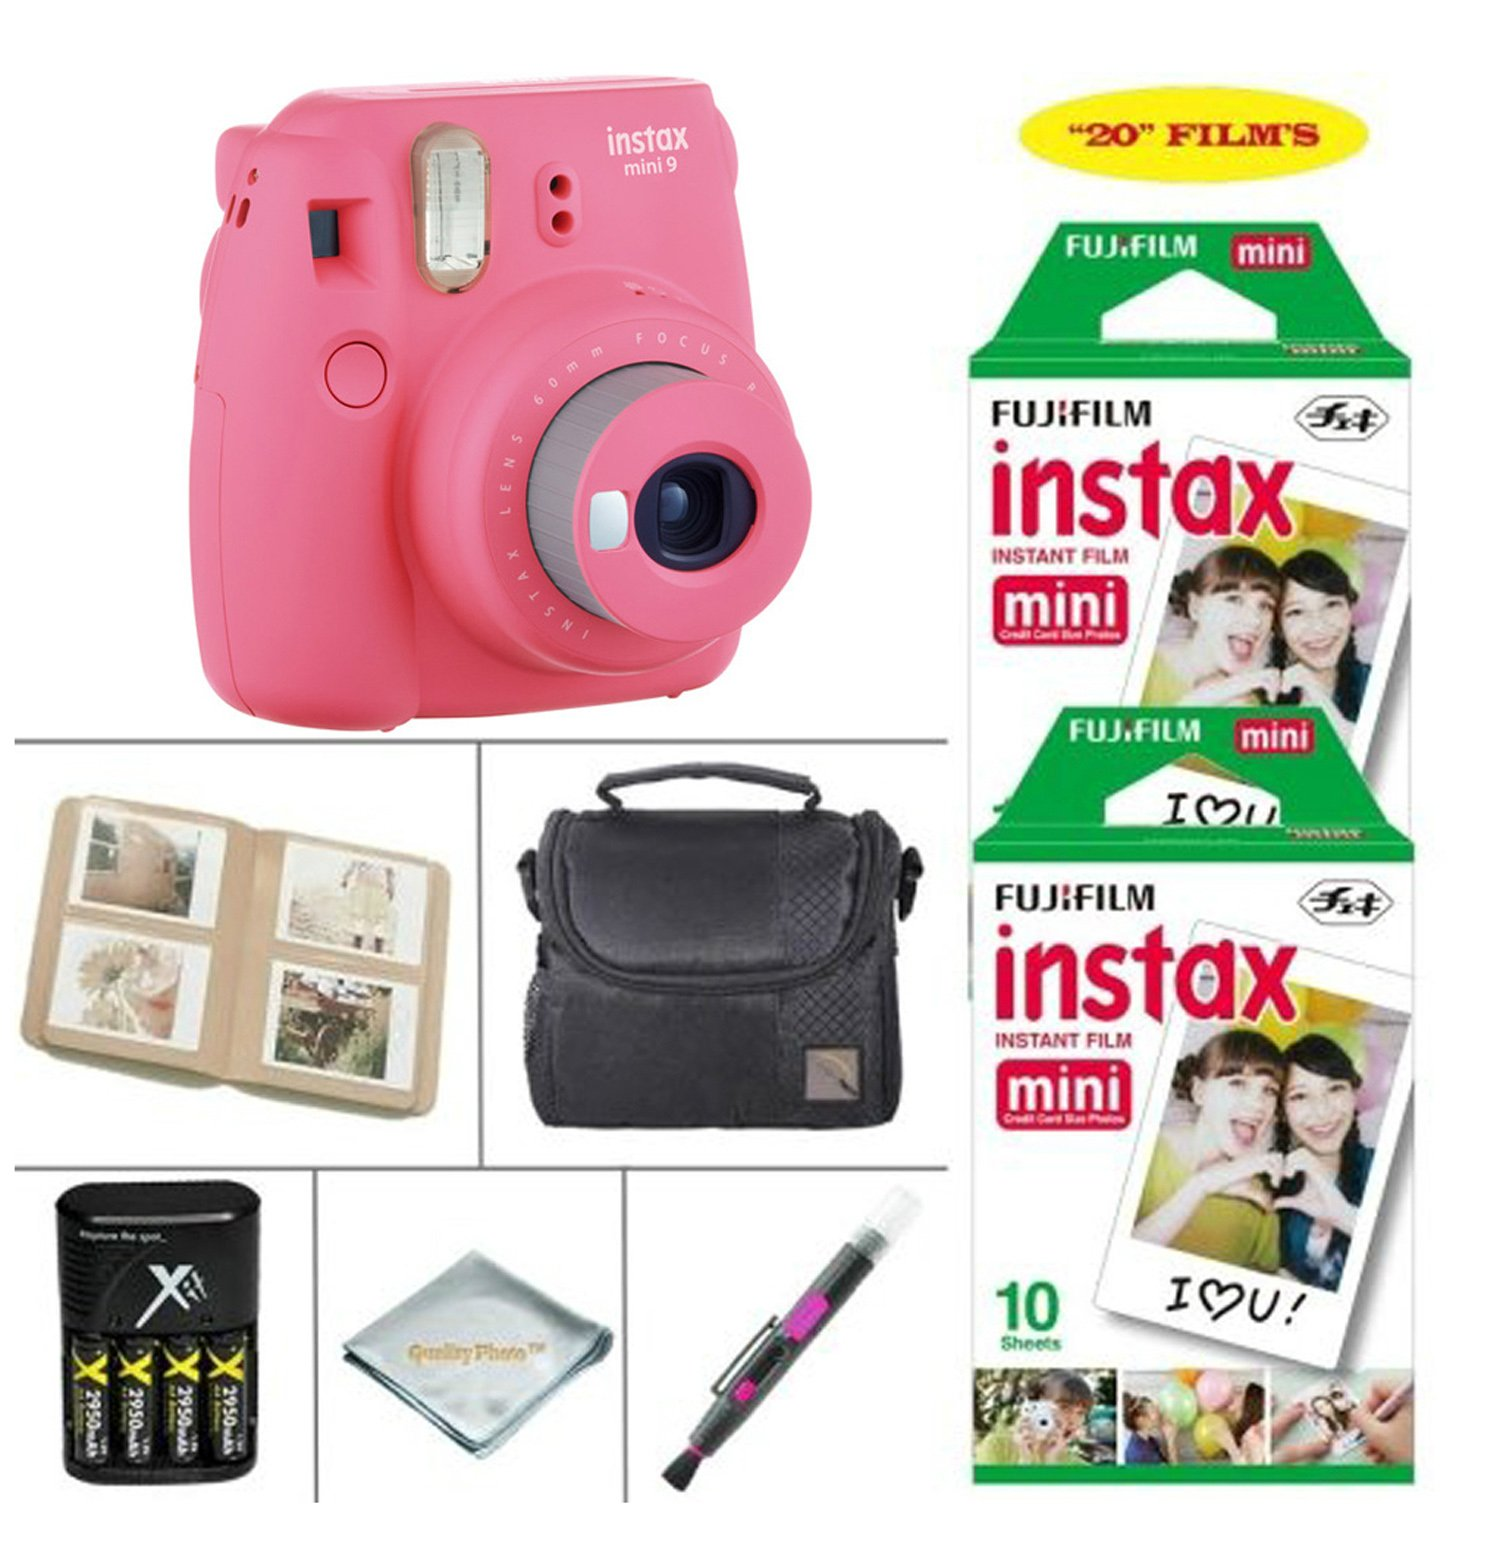 Fujifilm Instax Mini 9 Instant Camera (Flamingo Pink) + Fujifilm Instax Instant Film 20 Sheets + 4 Batteries & Charger + Photo Album + Convenient Case + MORE